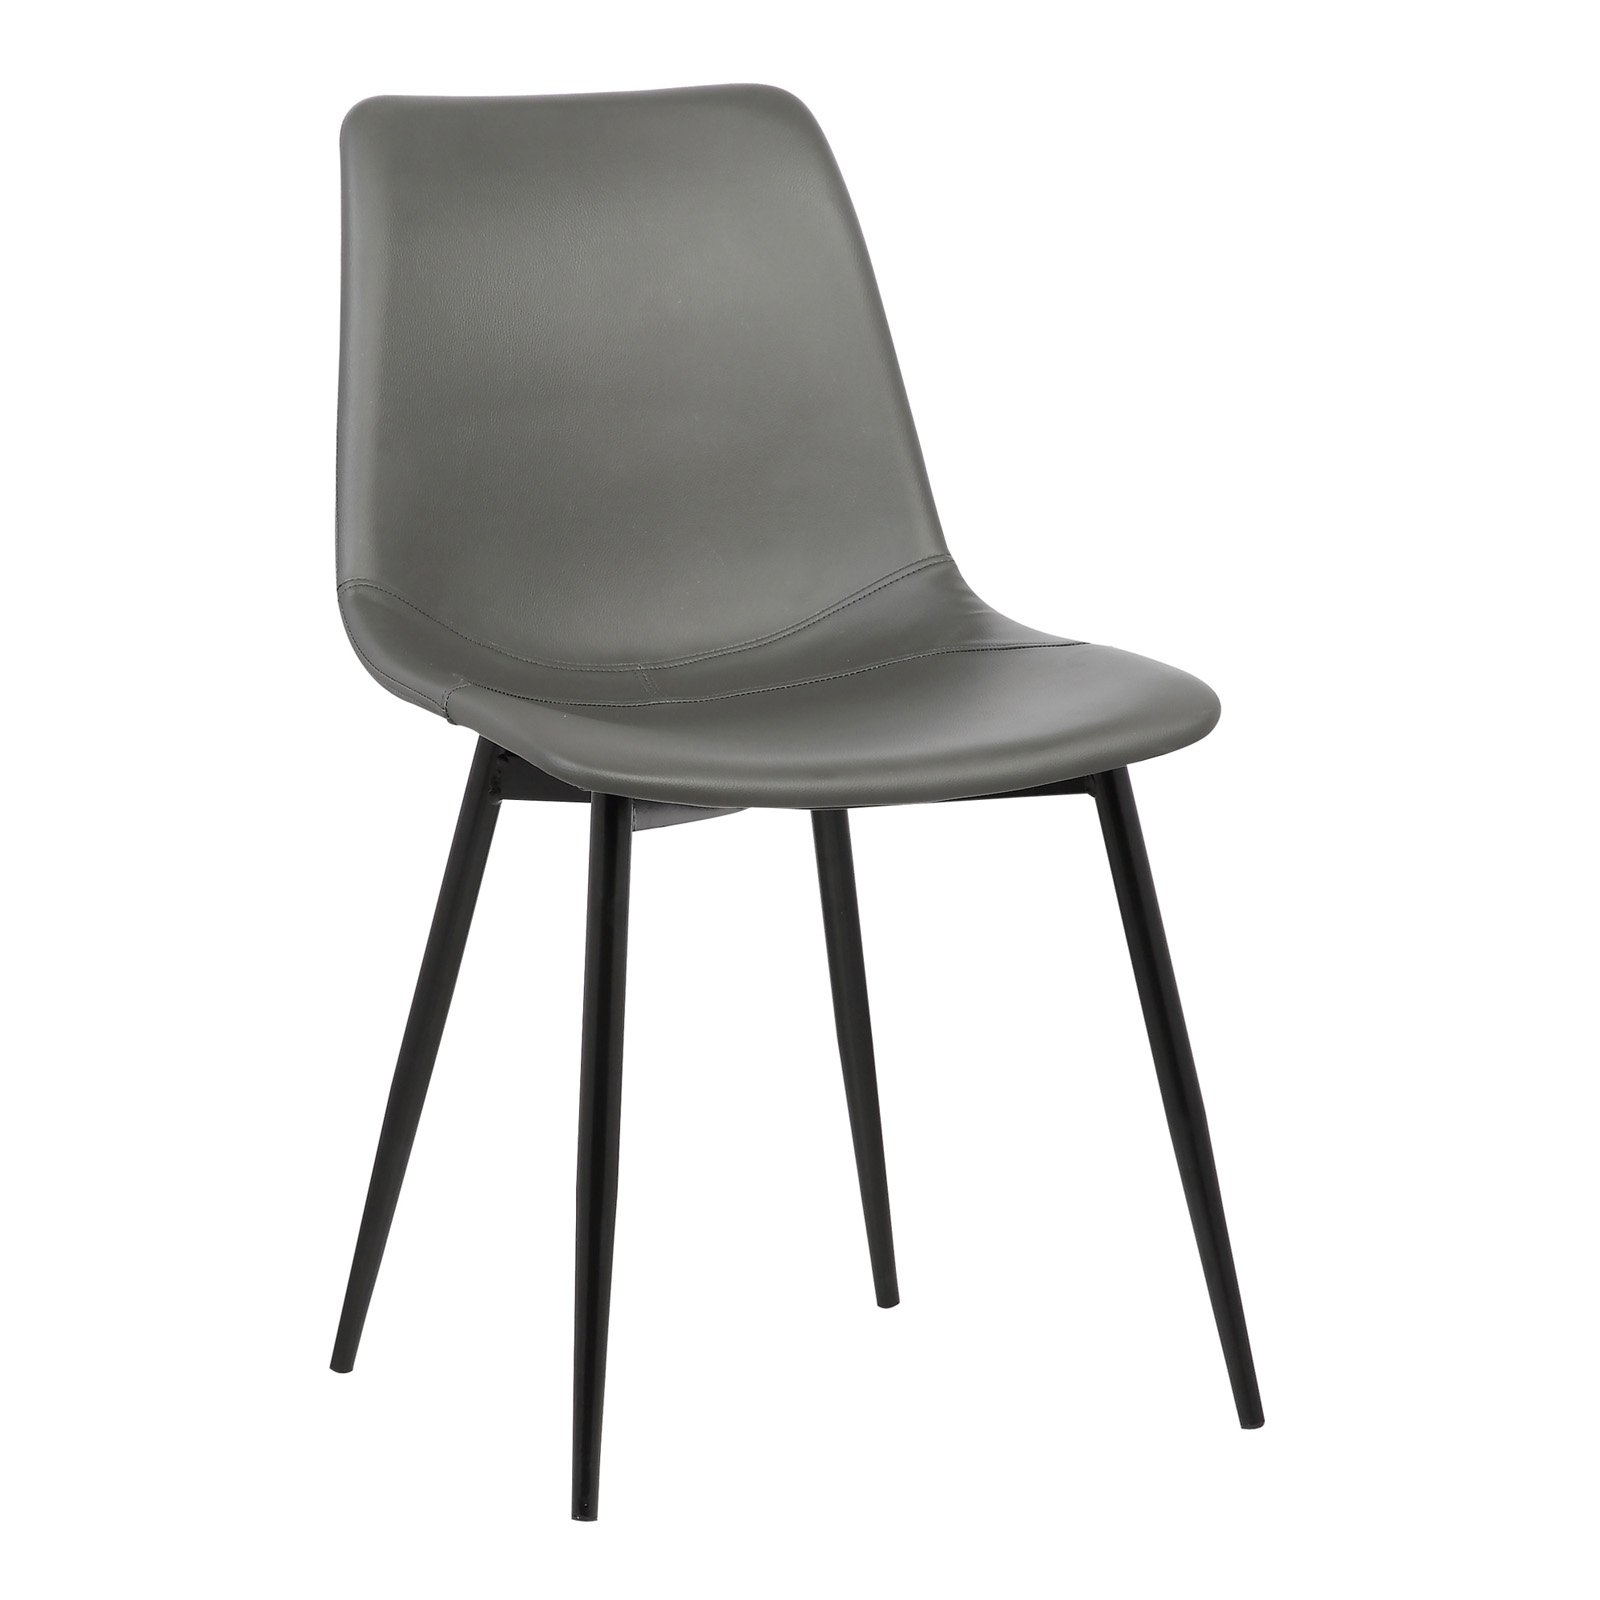 Merveilleux Armen Living Monte Contemporary Dining Chair In Gray Faux Leather With  Black Powder Coated Metal Legs